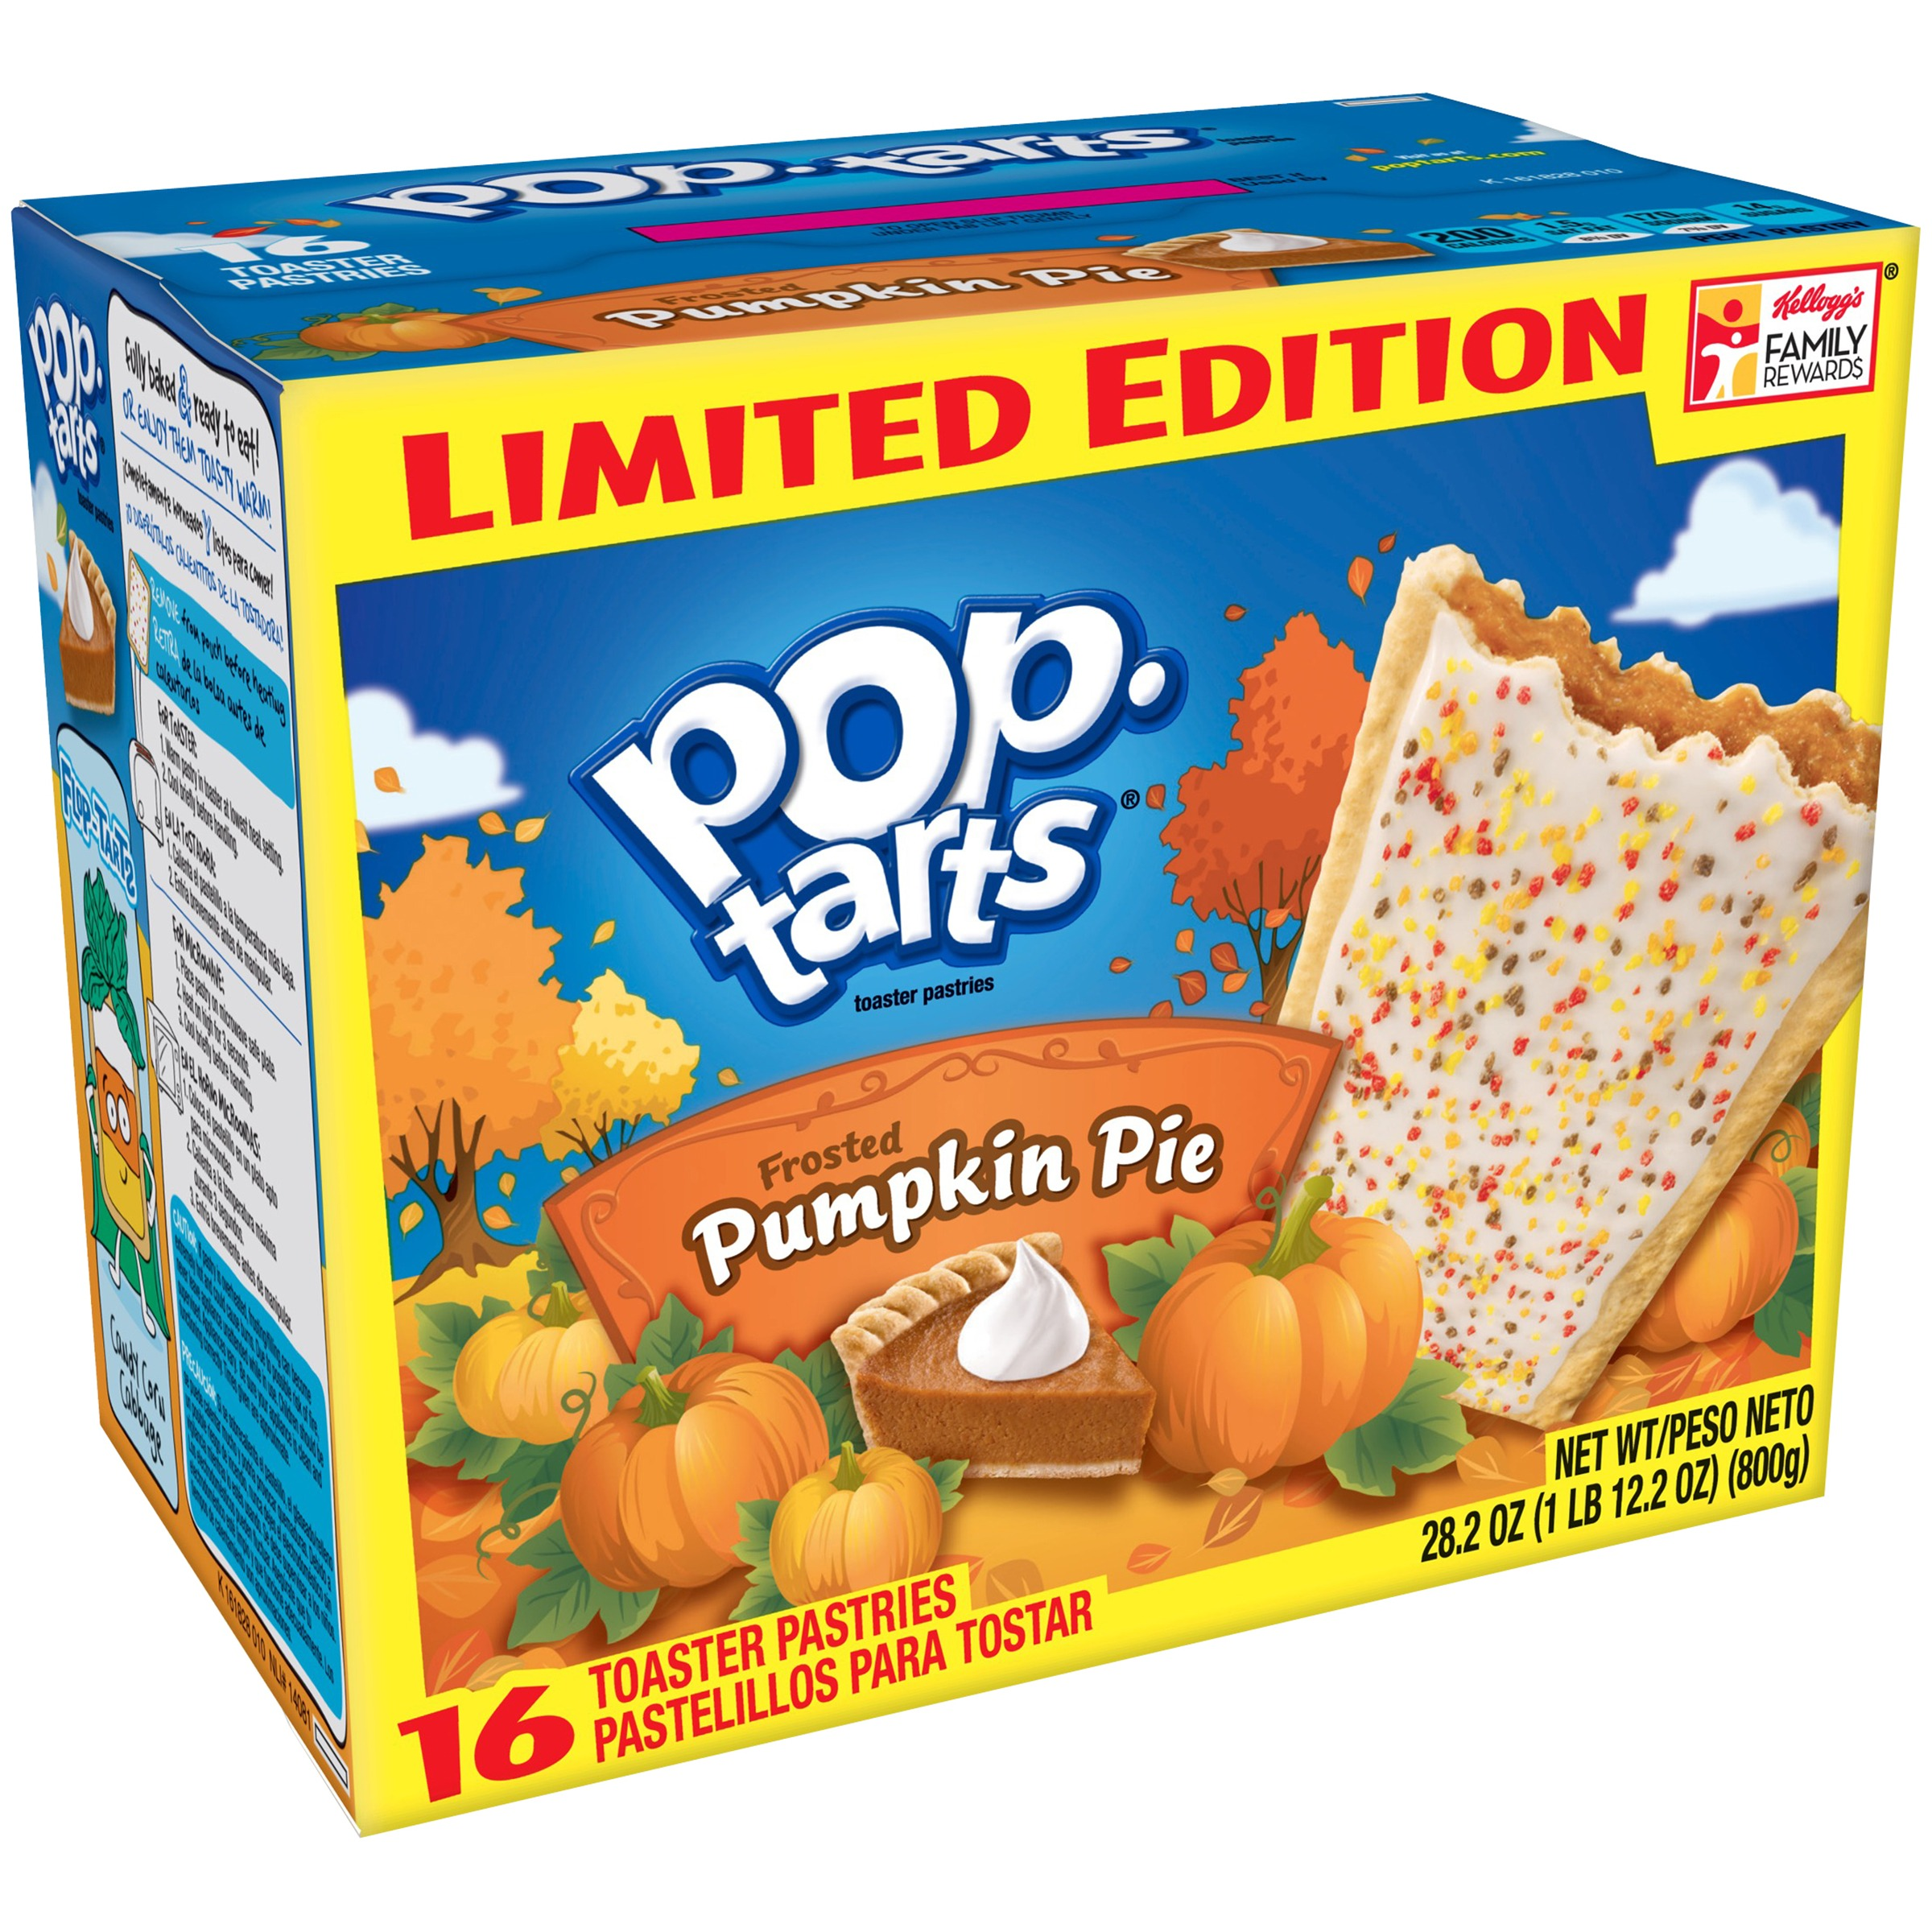 Kellogg's Pop Tarts Frosted Pumpkin Pie Toaster Pastries Limited Edition, 16 count, 28.2 oz